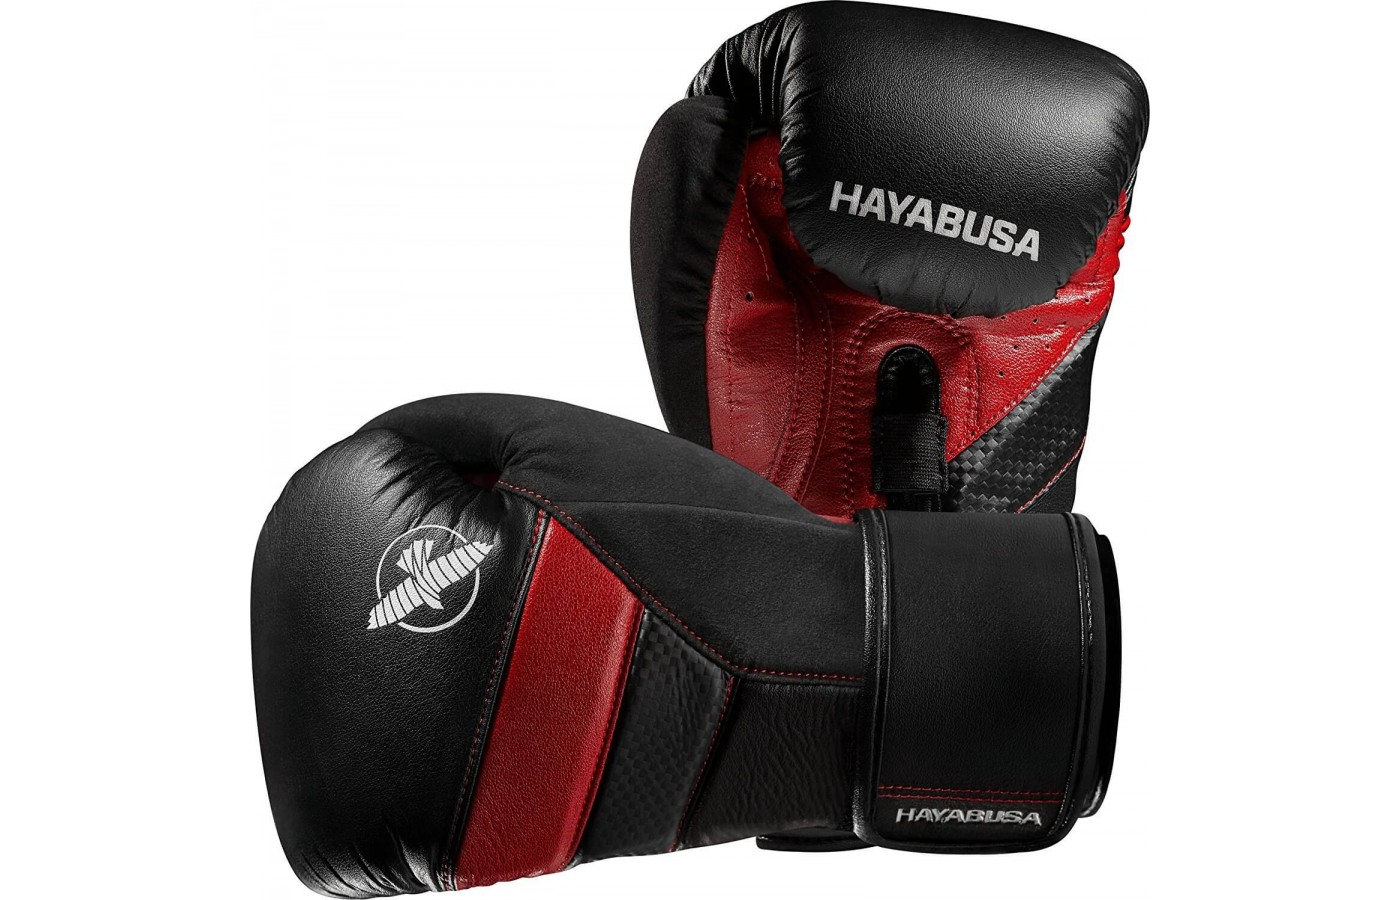 Hayabusa Tokushu black and red